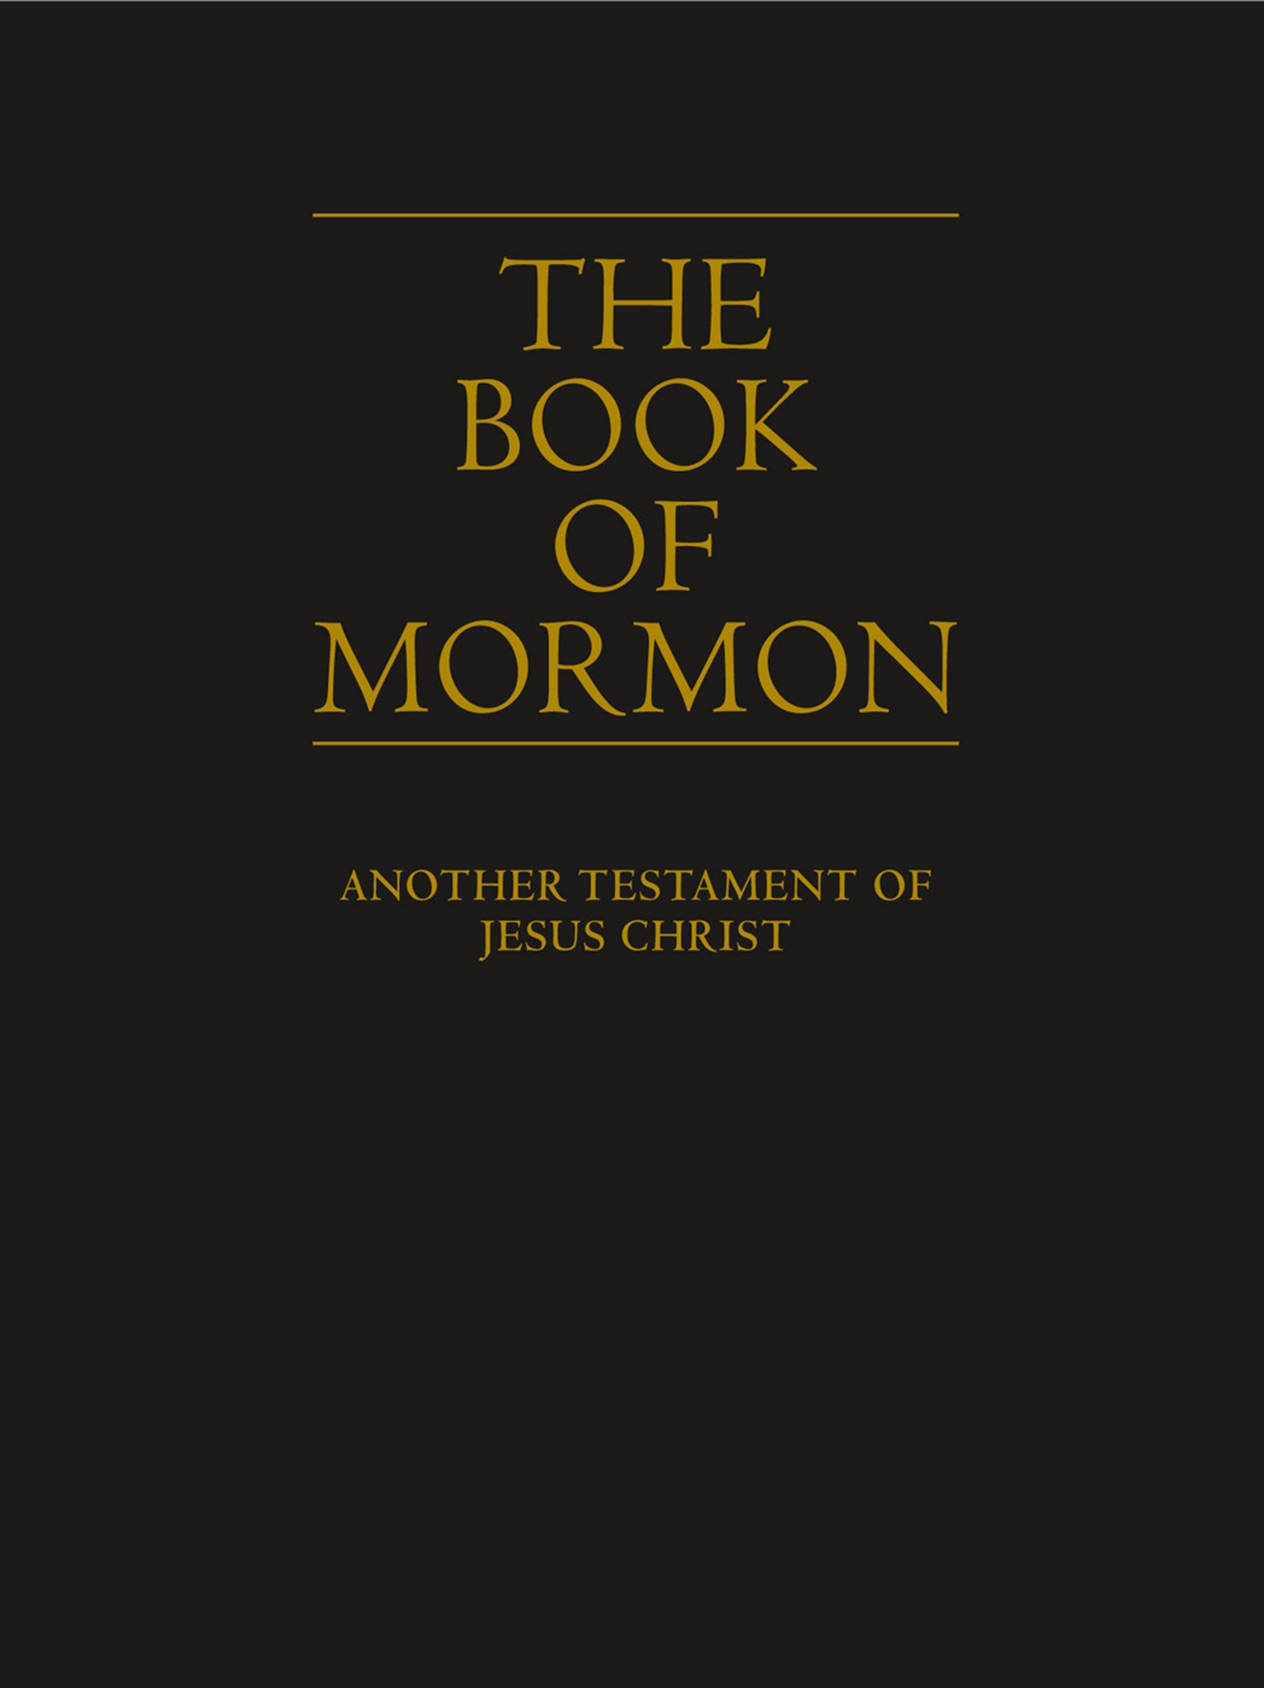 The Book Of Mormon By The Church Of Jesus Christ Of Latter